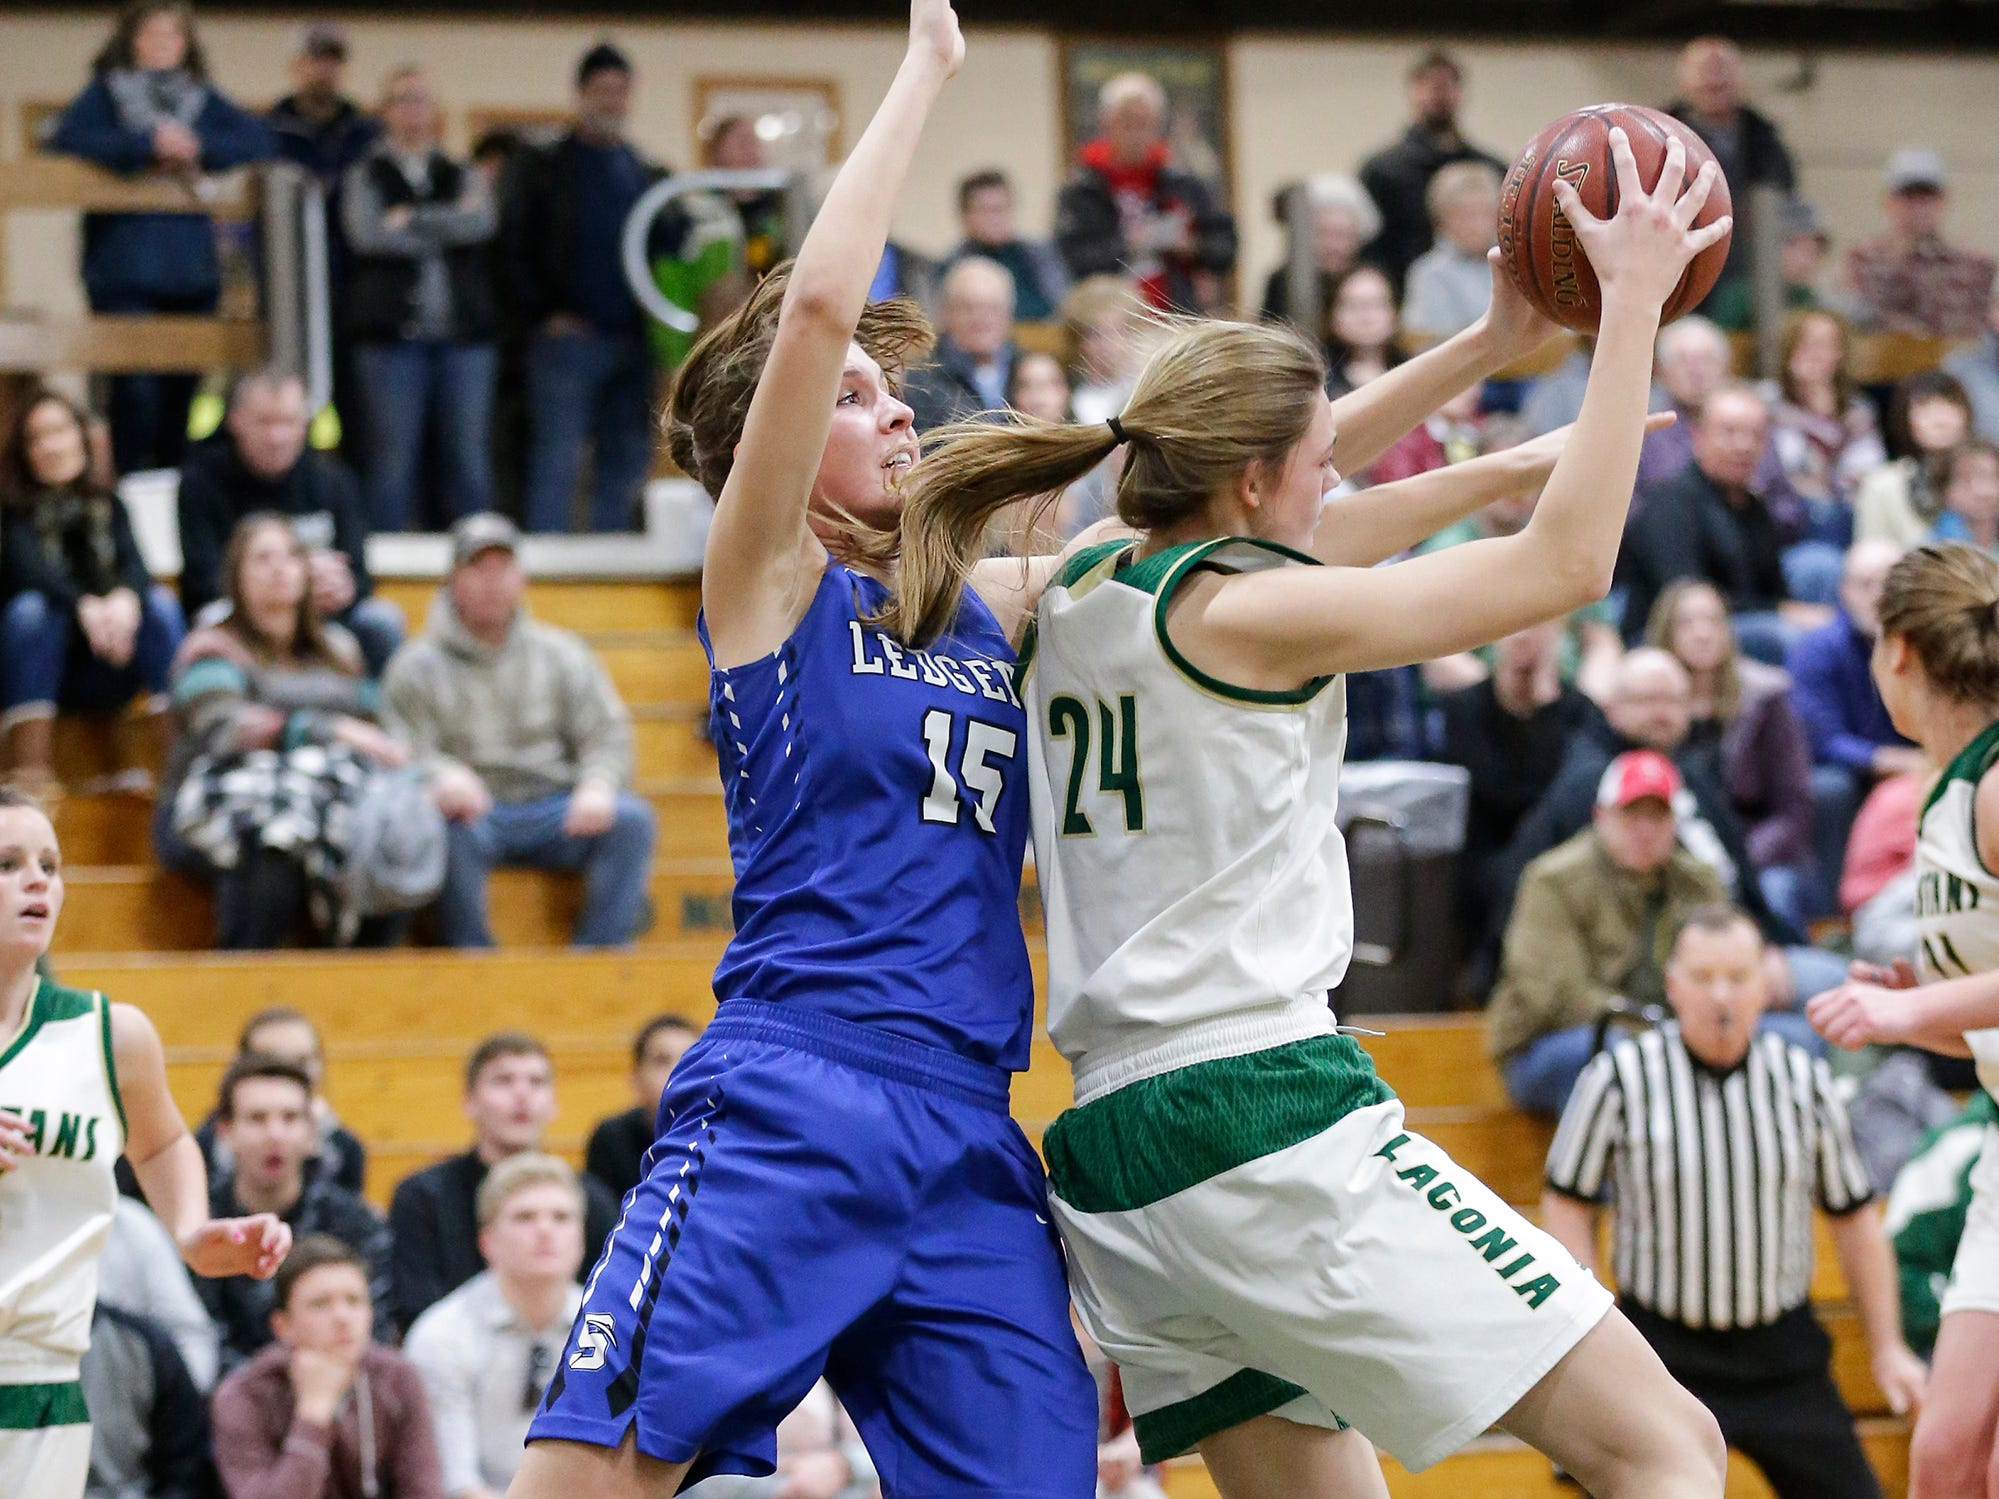 Laconia High School girls basketball's Maci Grade steals a pass intended for St. Mary's Springs Academy's Maddie Gehring Tuesday, January 15, 2019 during their game in Rosendale. Laconia won the game 57-45. Doug Raflik/USA TODAY NETWORK-Wisconsin